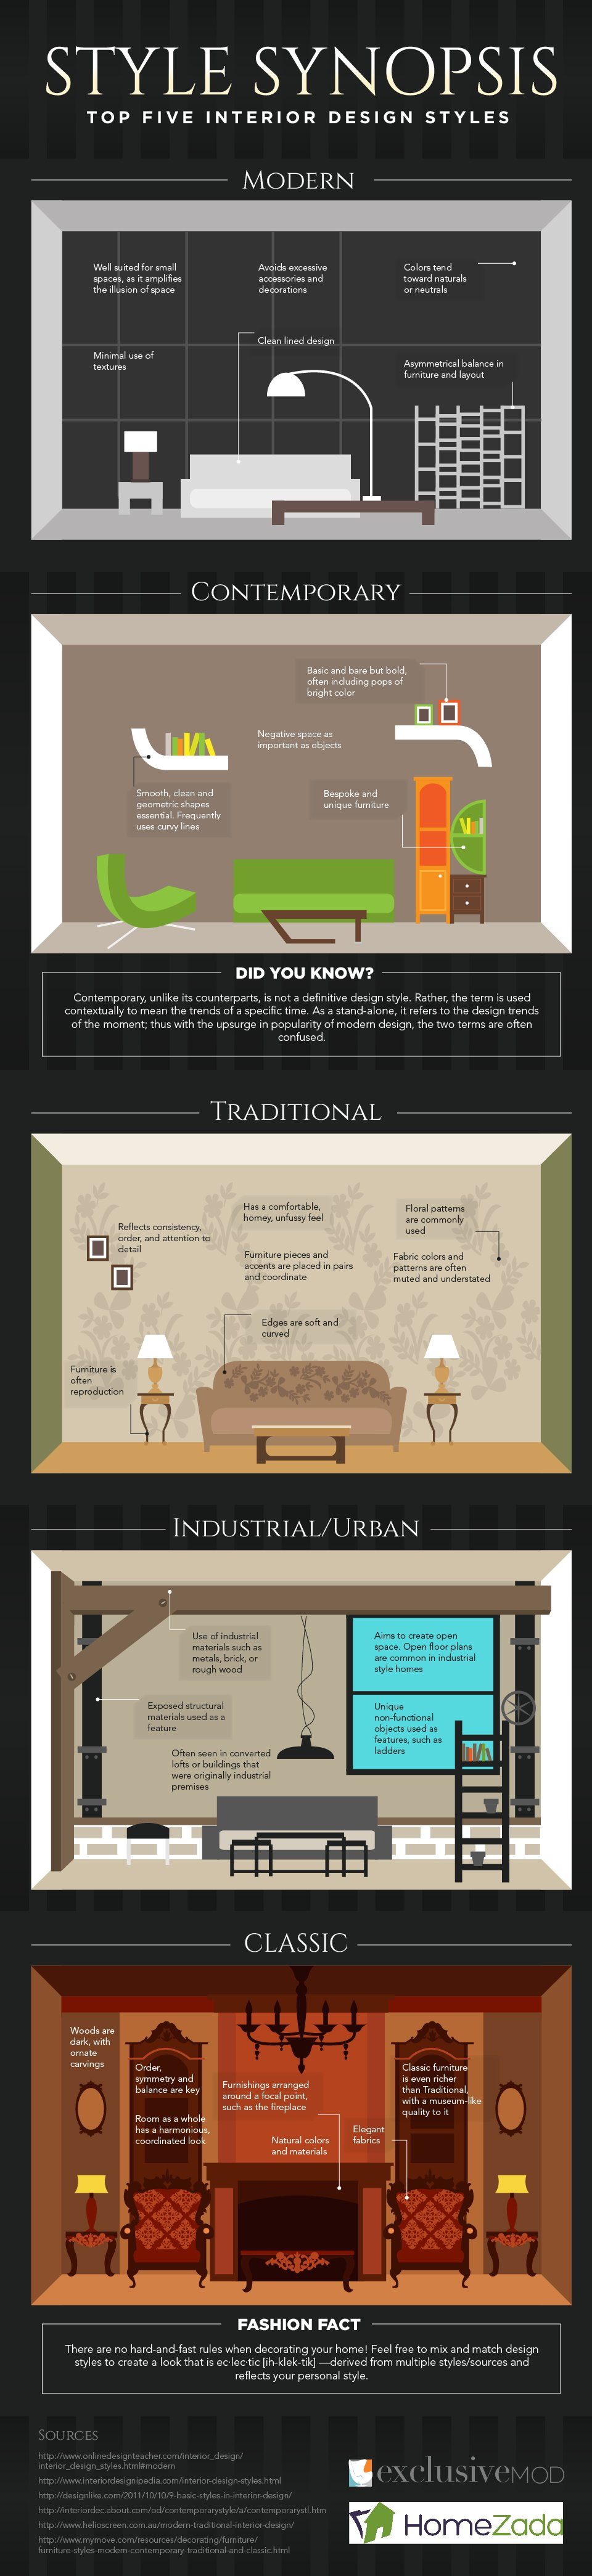 Style synopsis the top 5 interior design styles for Interior design styles guide